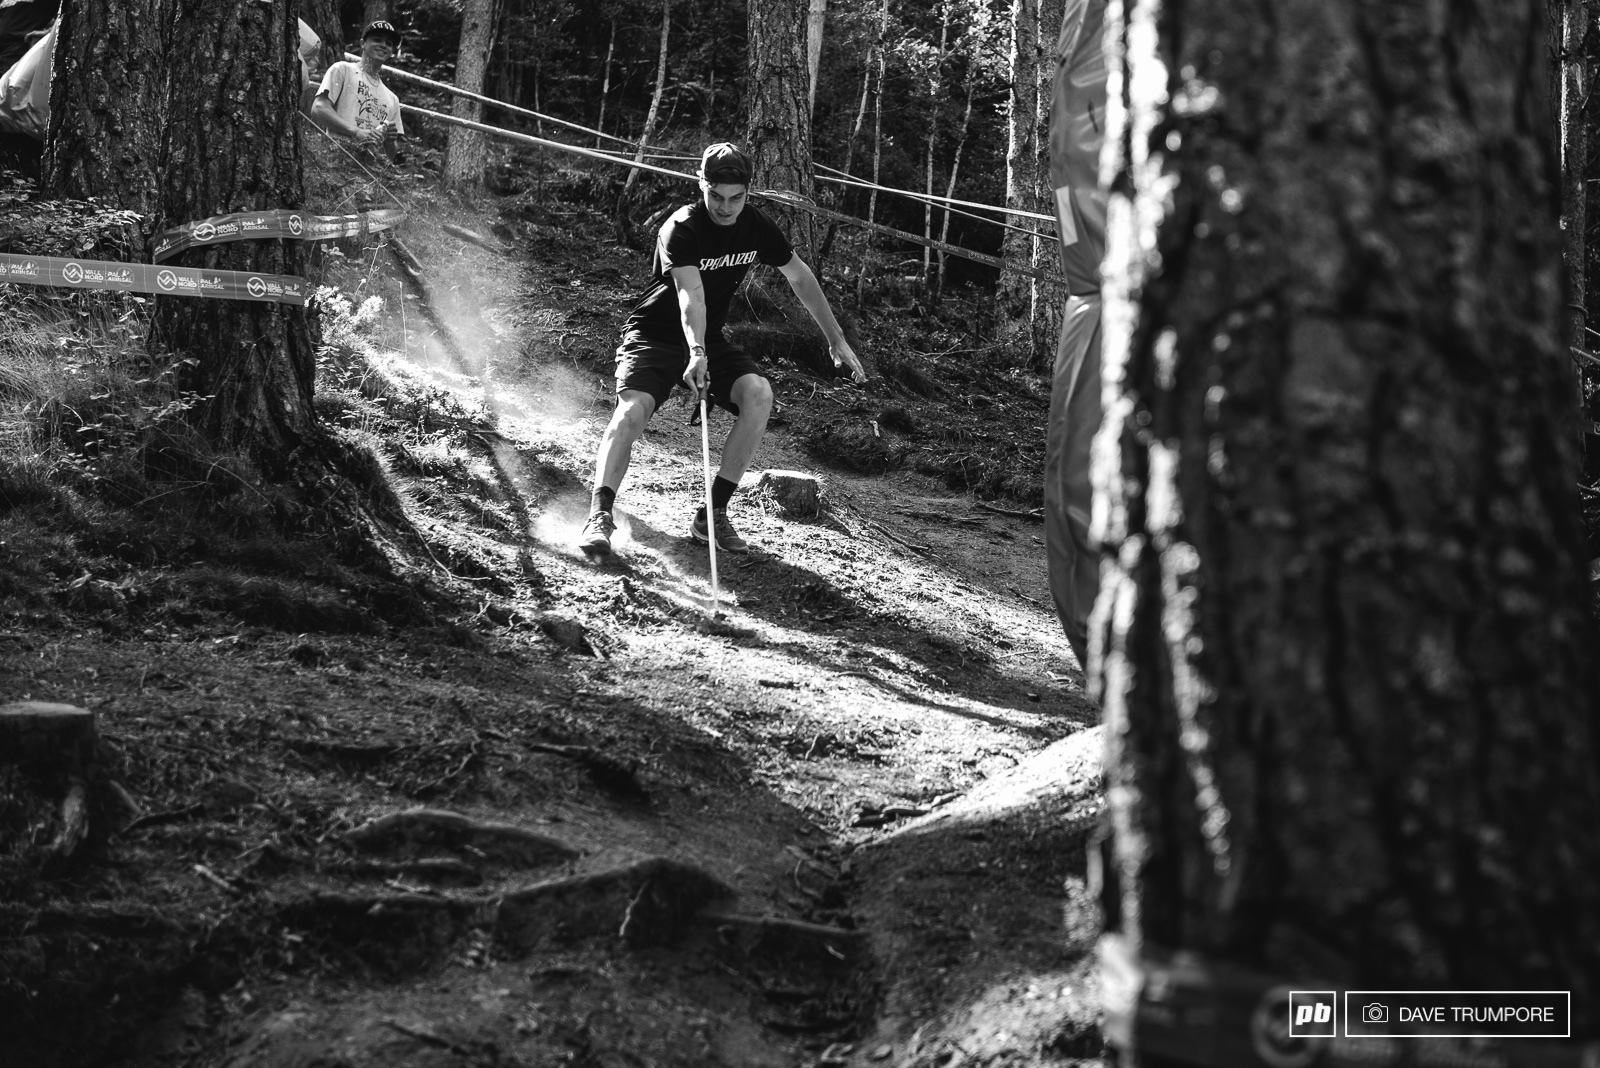 Loris Vergier trying to put the brakes on while descending one of the steep chutes in the lower woods.